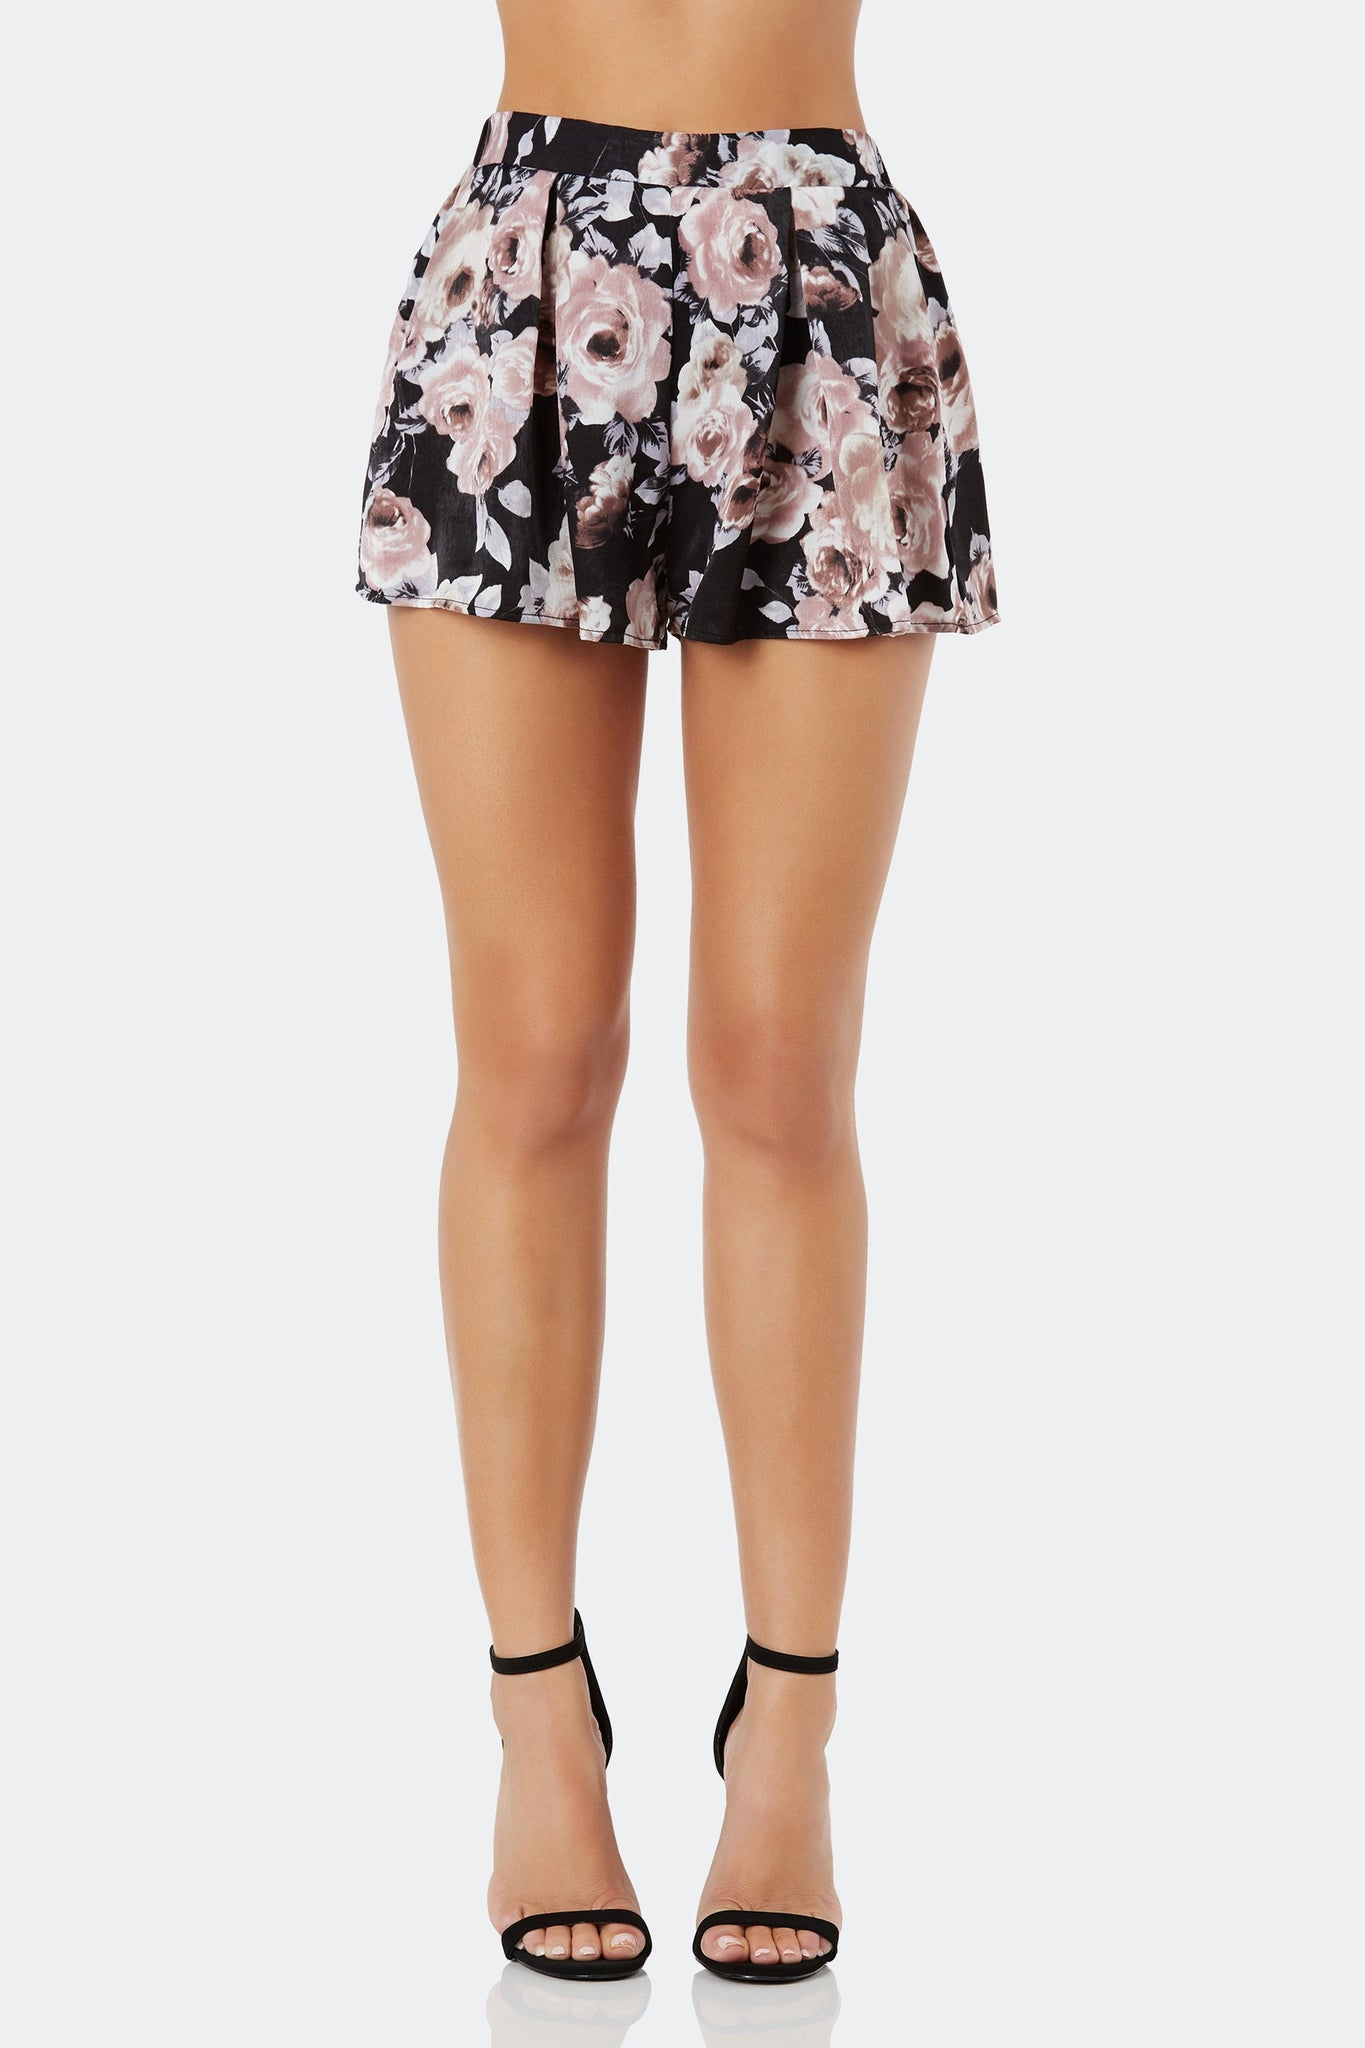 Flirty A-line shorts with smooth satin-like finish. Bold floral print throughout with elasticized waist.